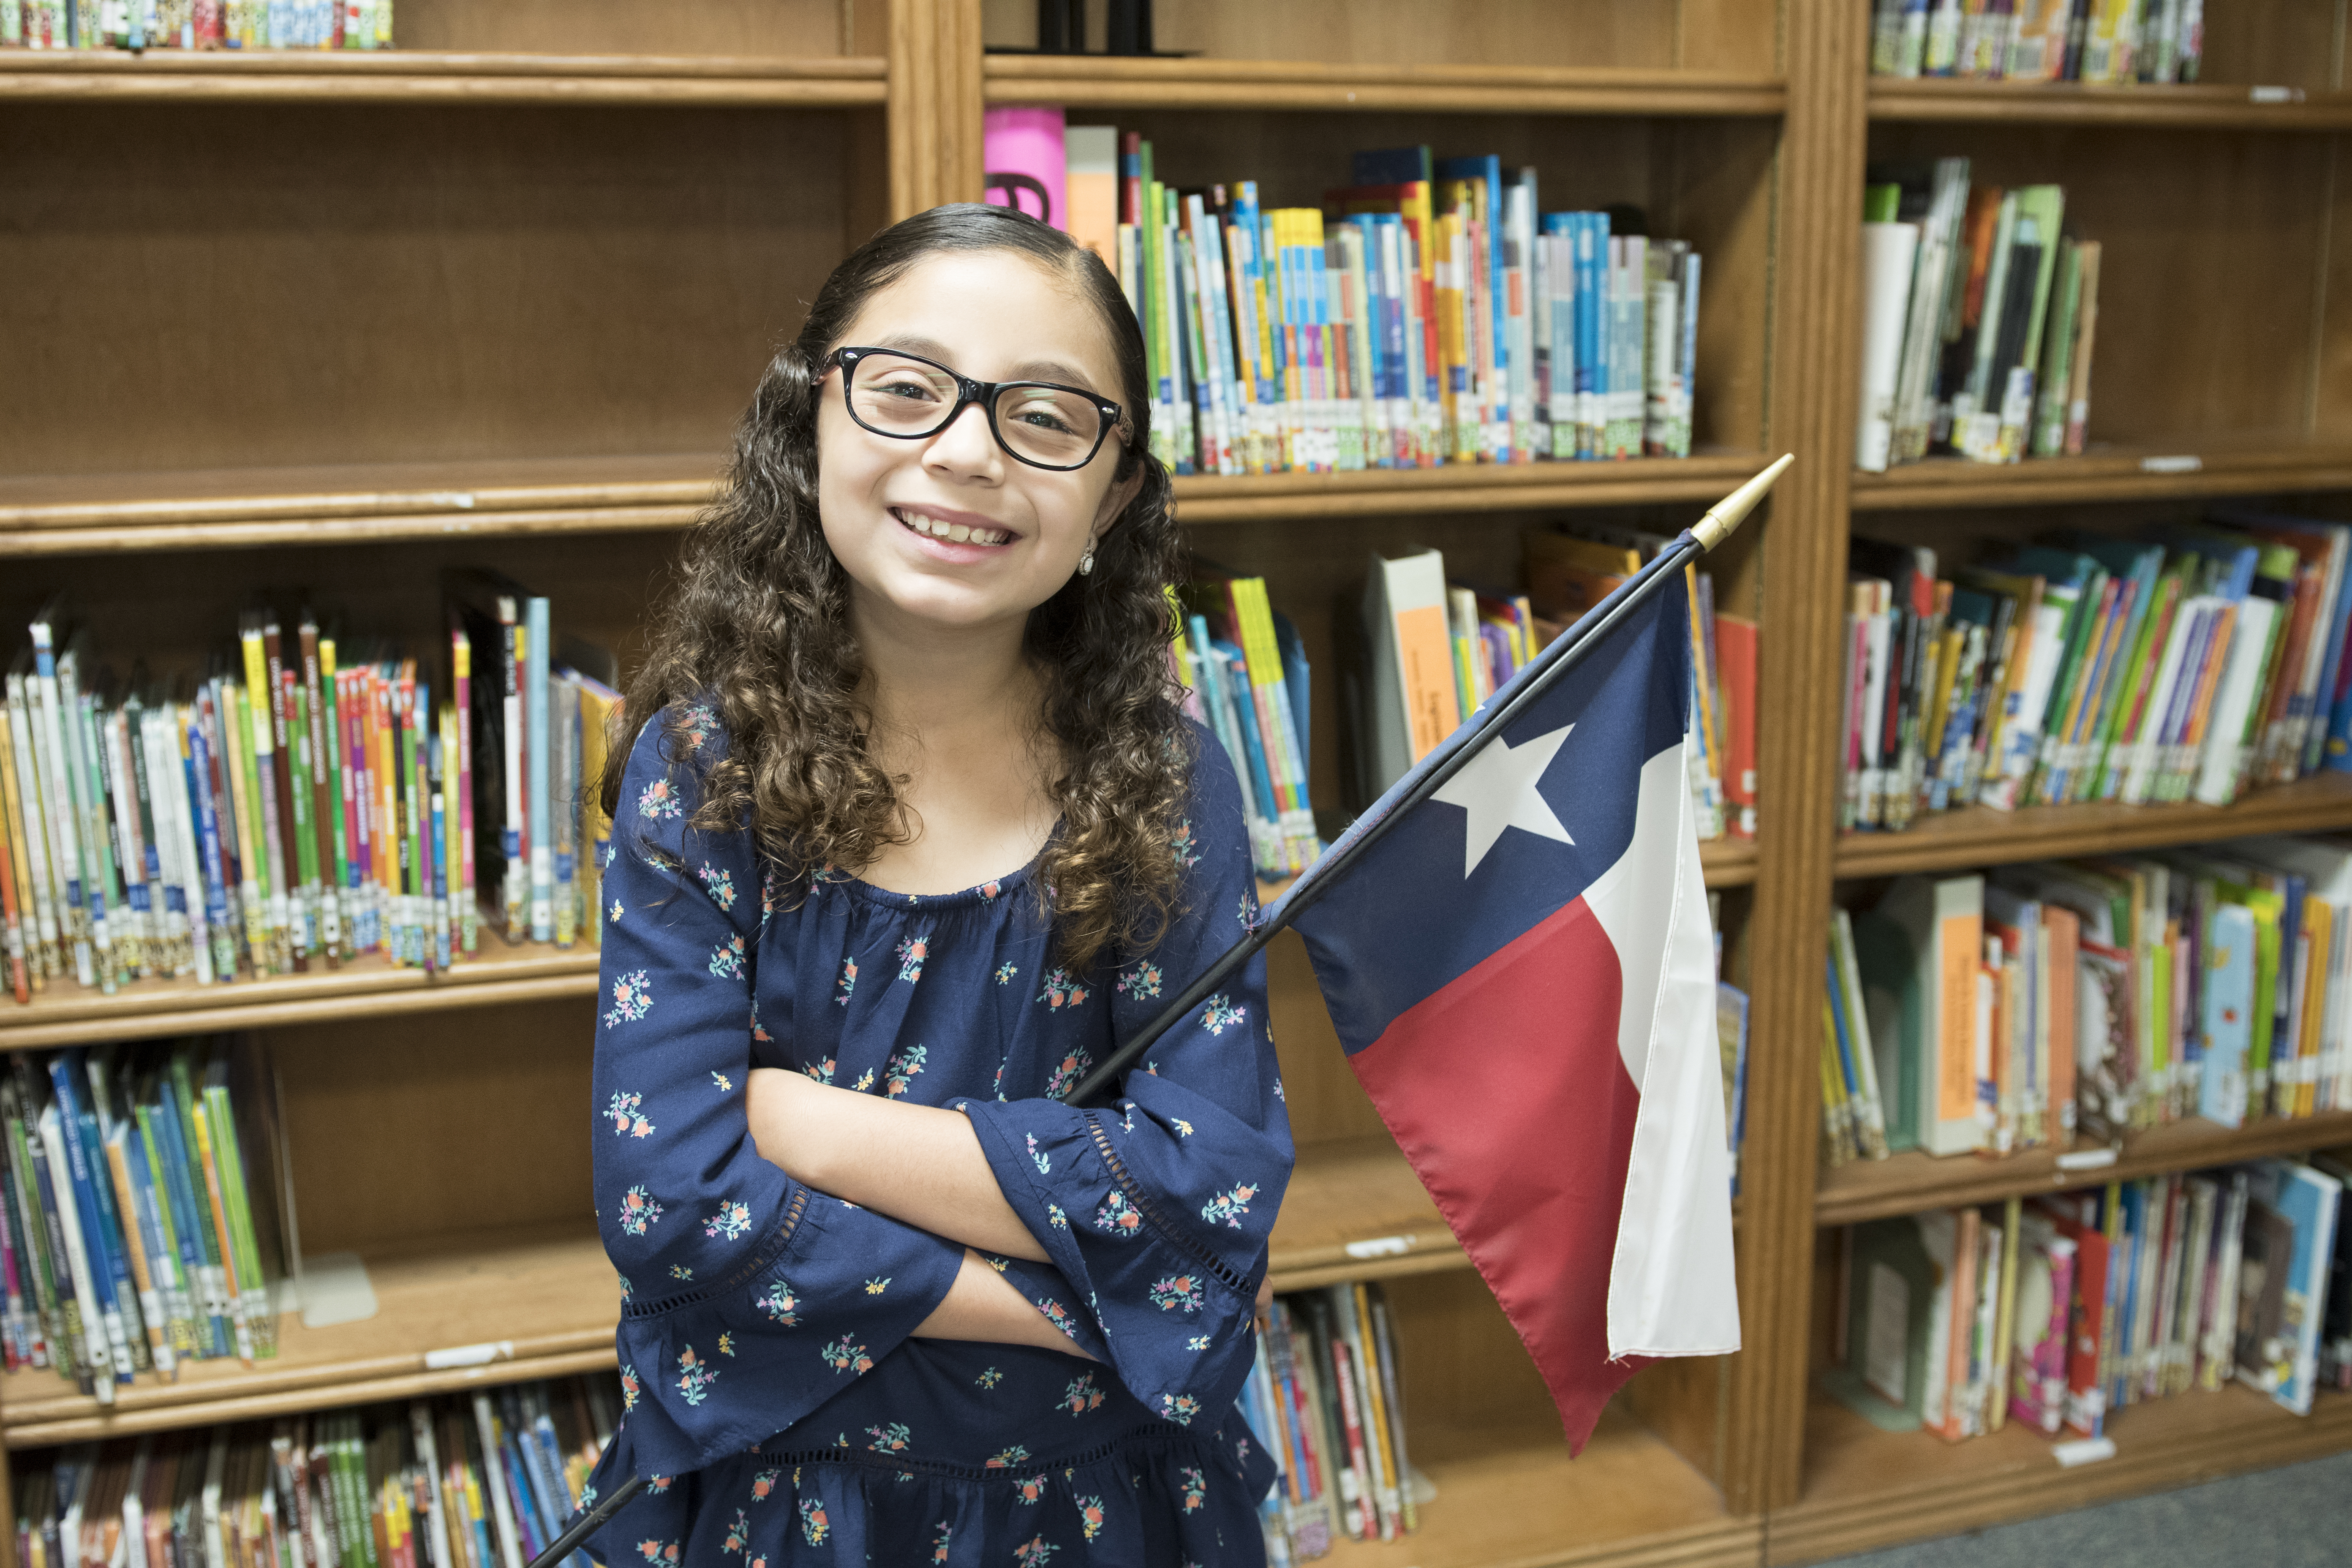 Stuart Place third-grader wins regional Take Care of Texas Art Contest